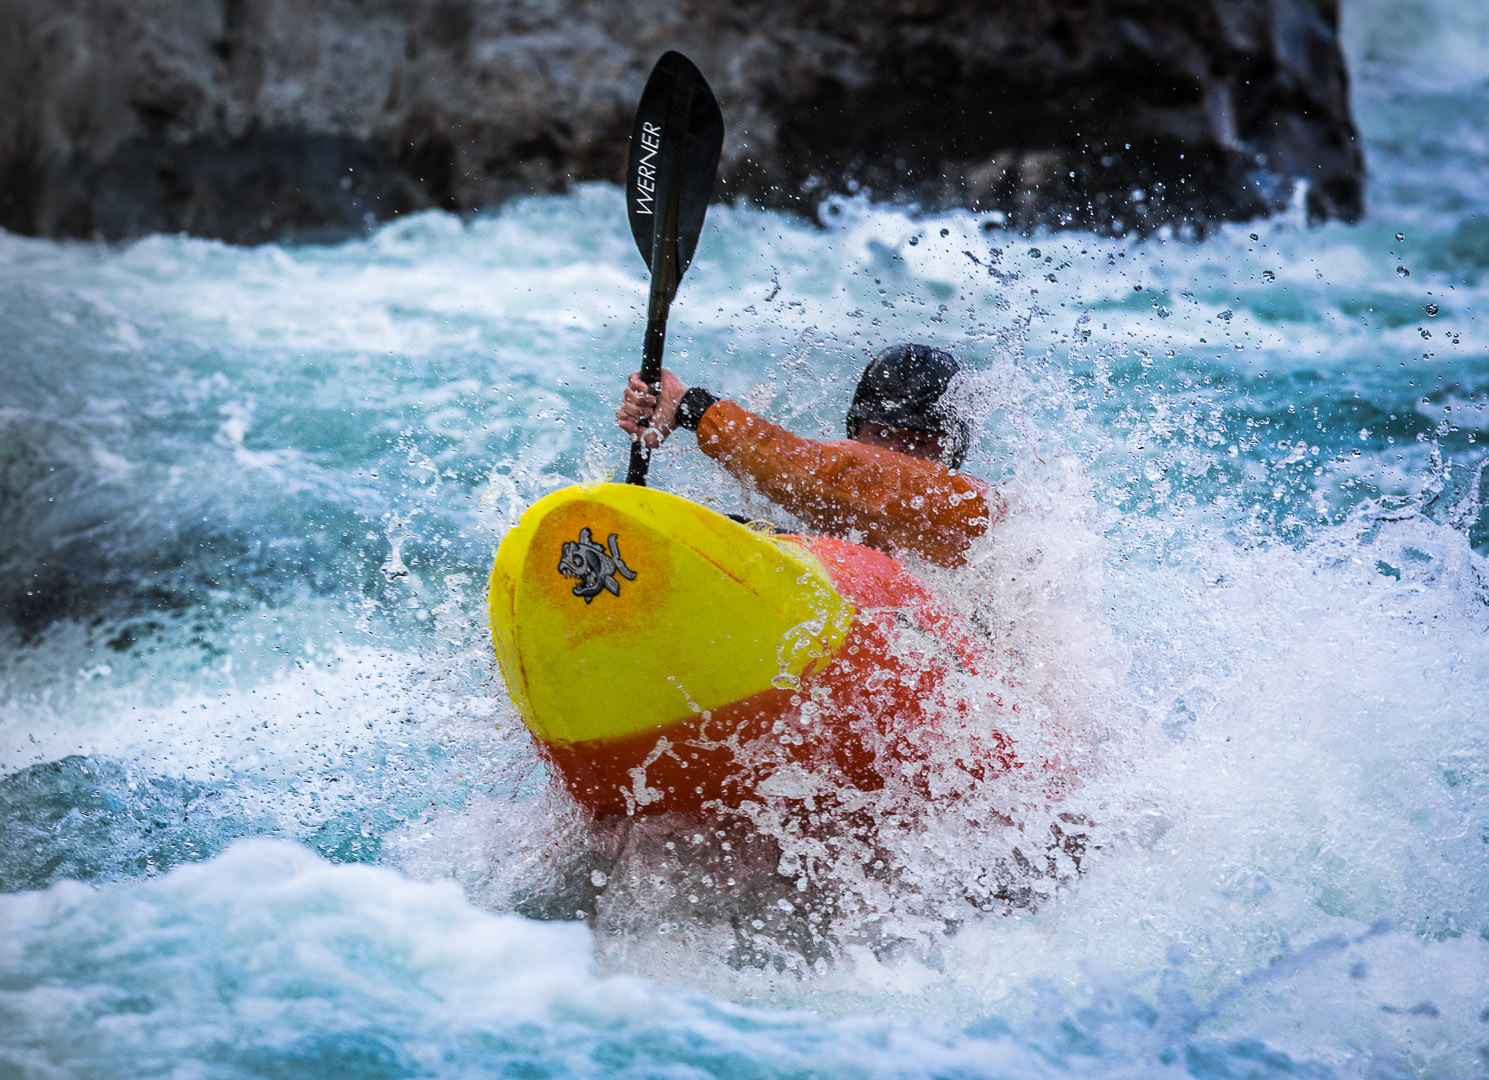 White Water Kayaking/Active Lifestyle